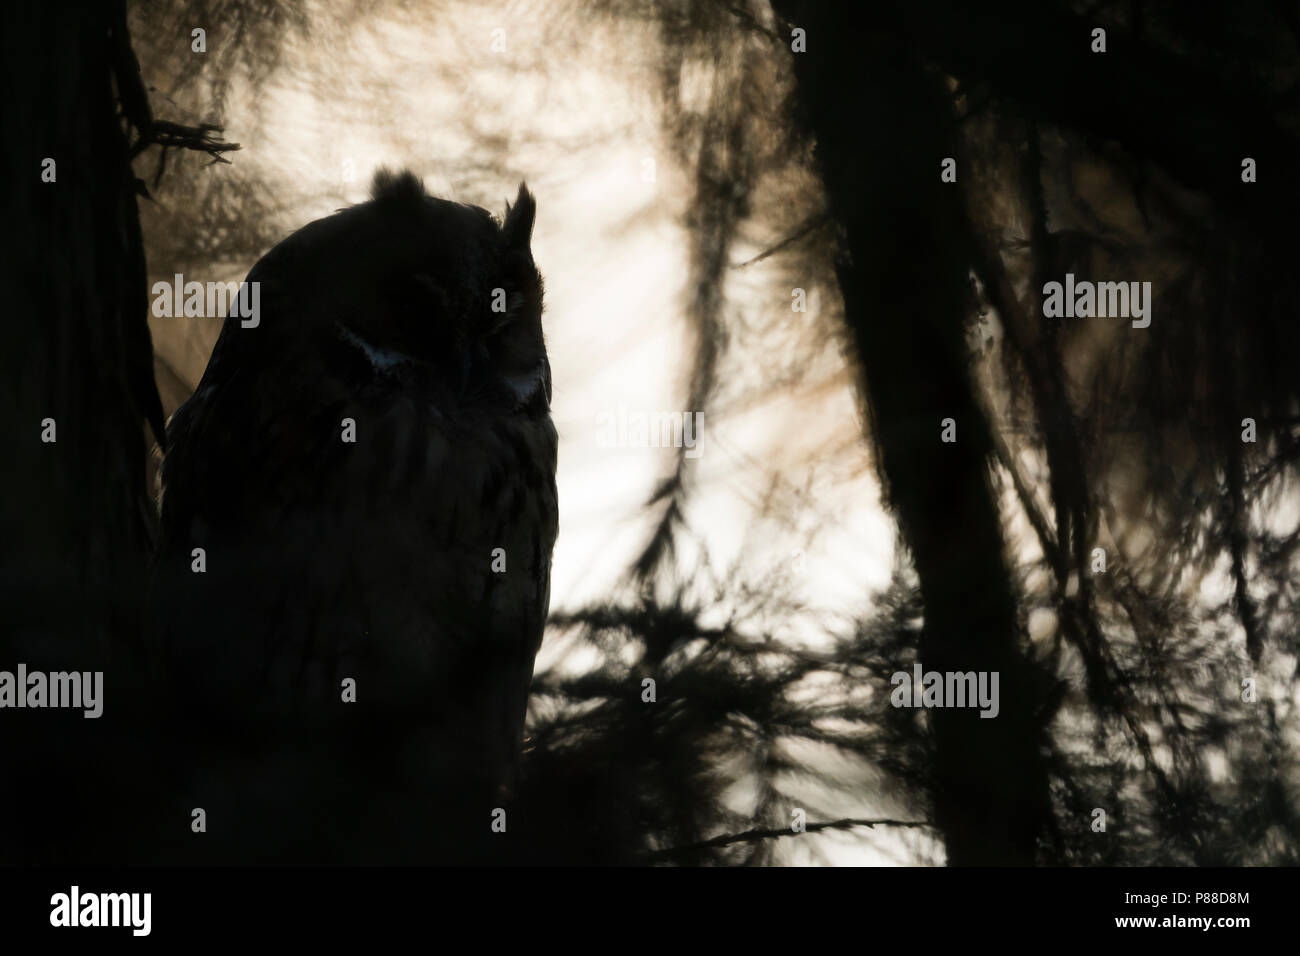 Long-eared Owl - Waldohreule - Asio otus otus, Germany Stock Photo